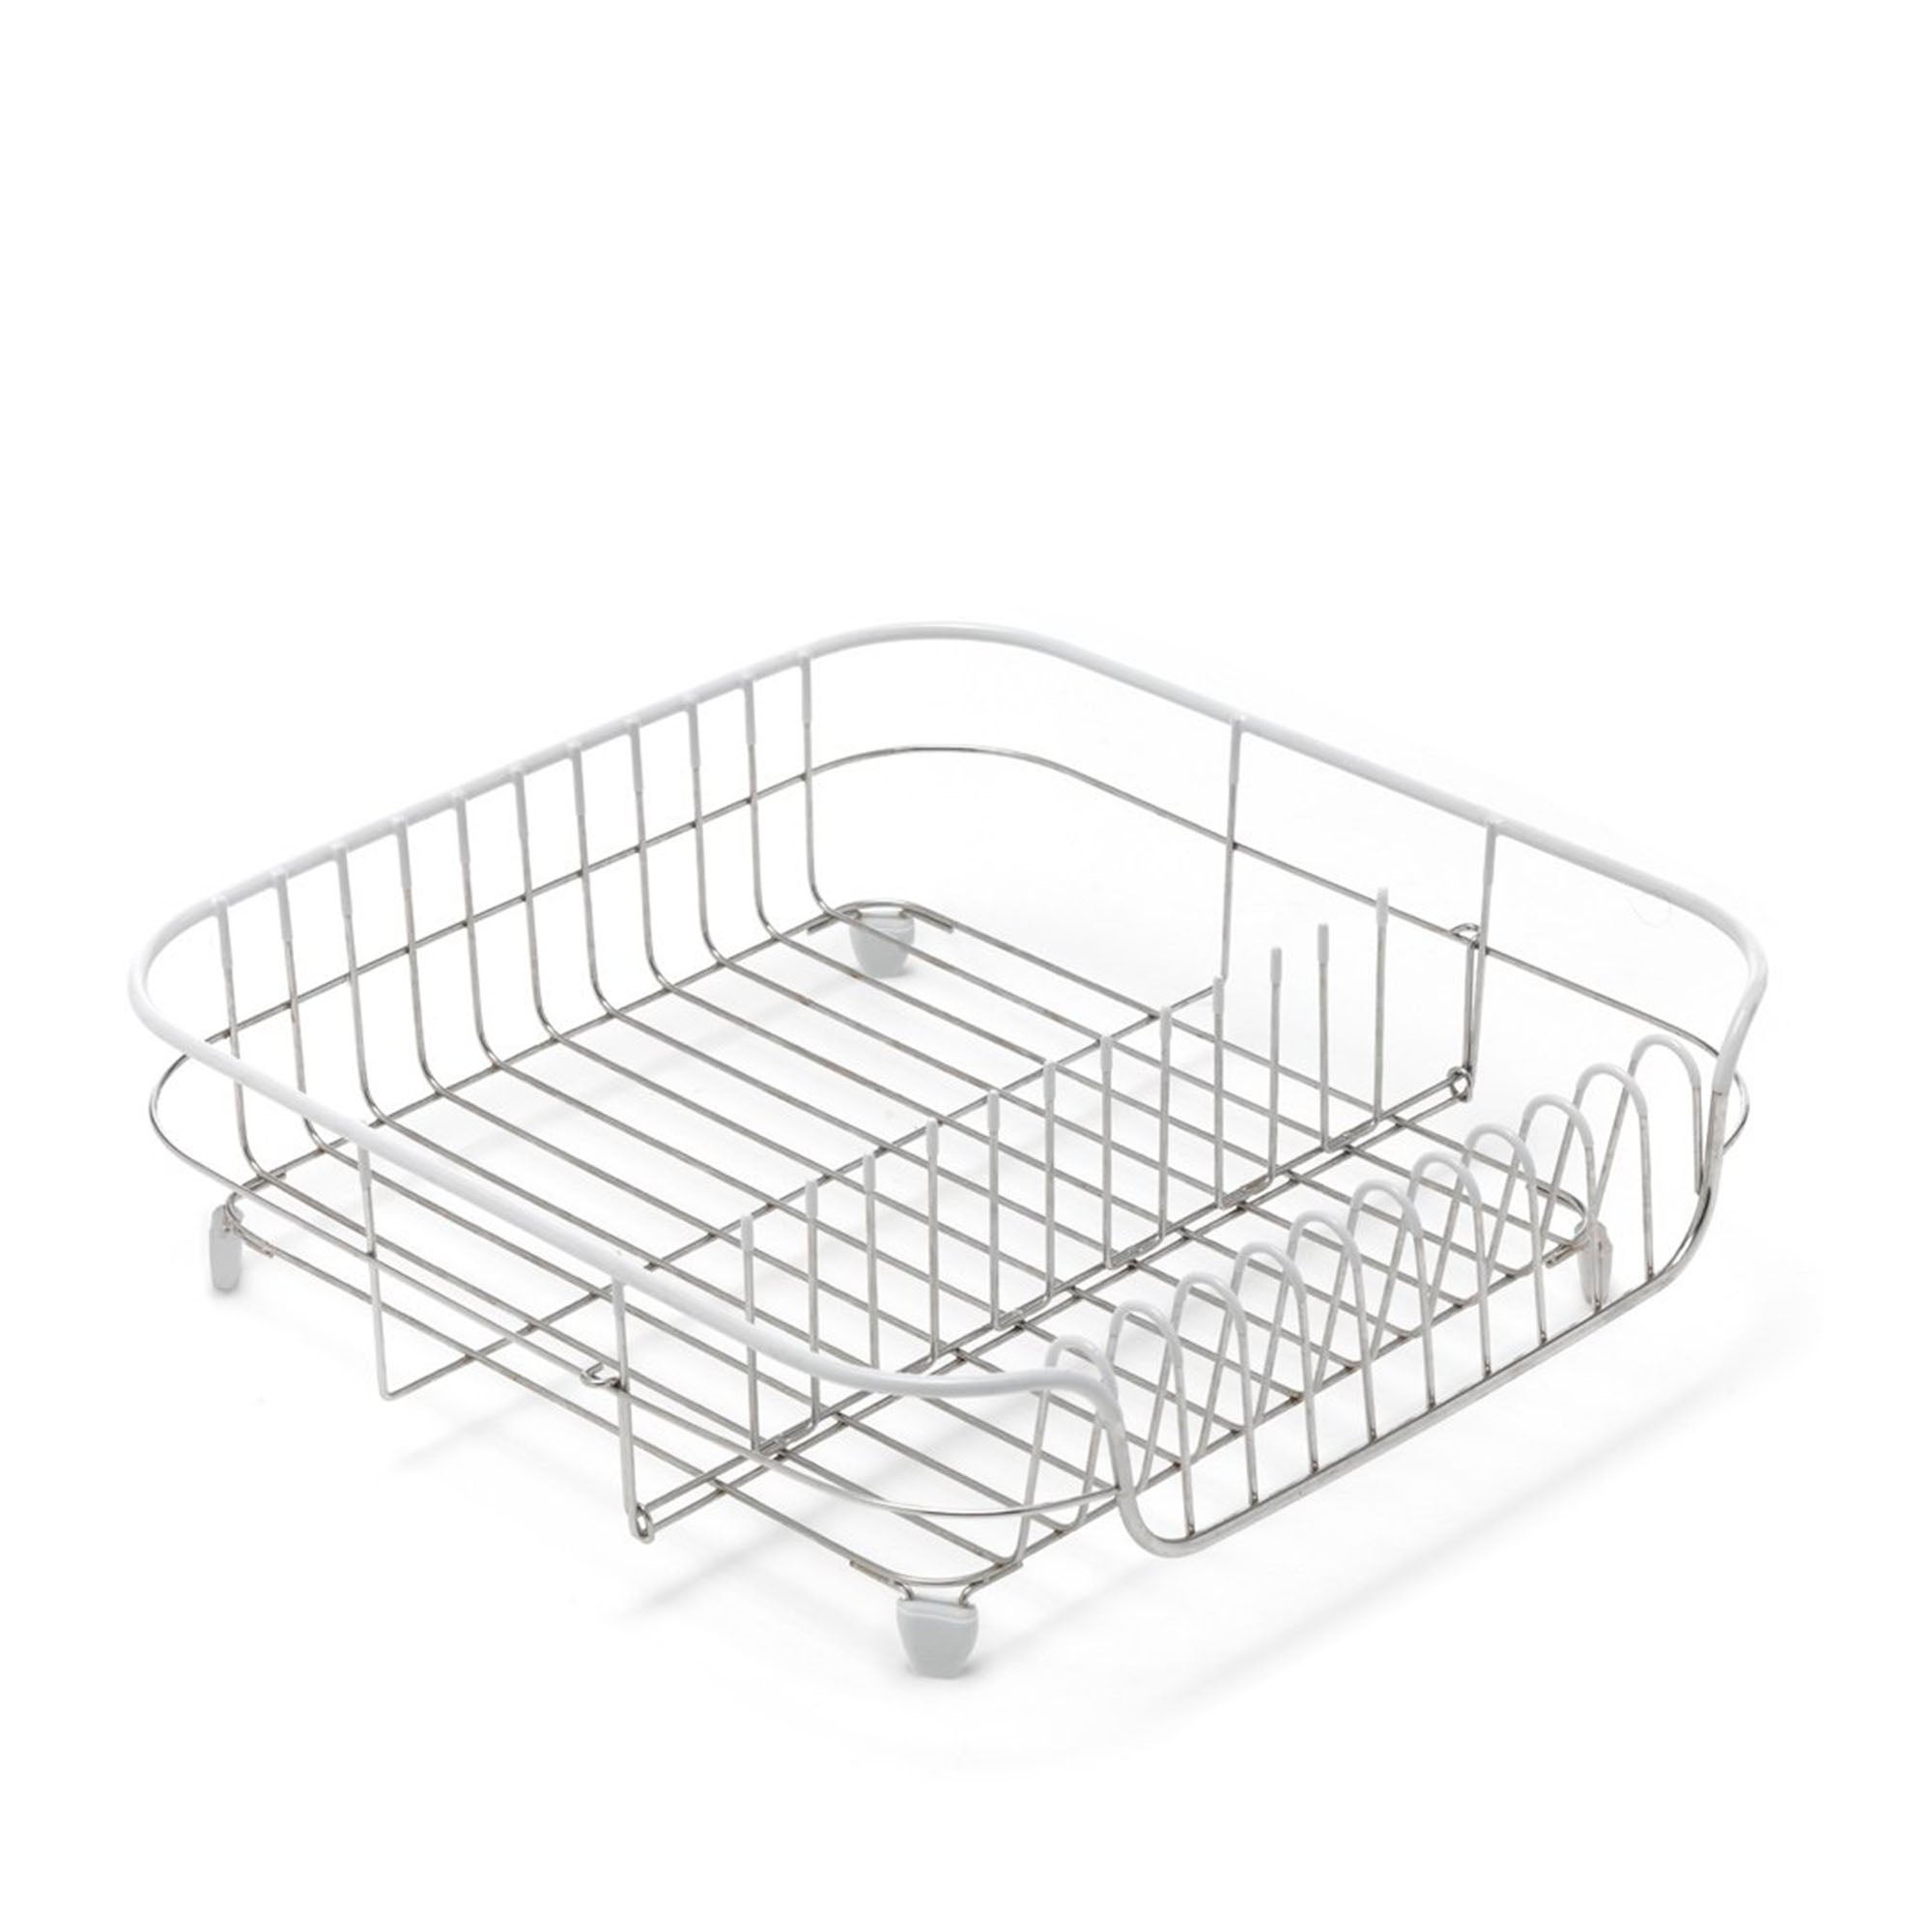 Addis Deluxe Coated Draining Rack White